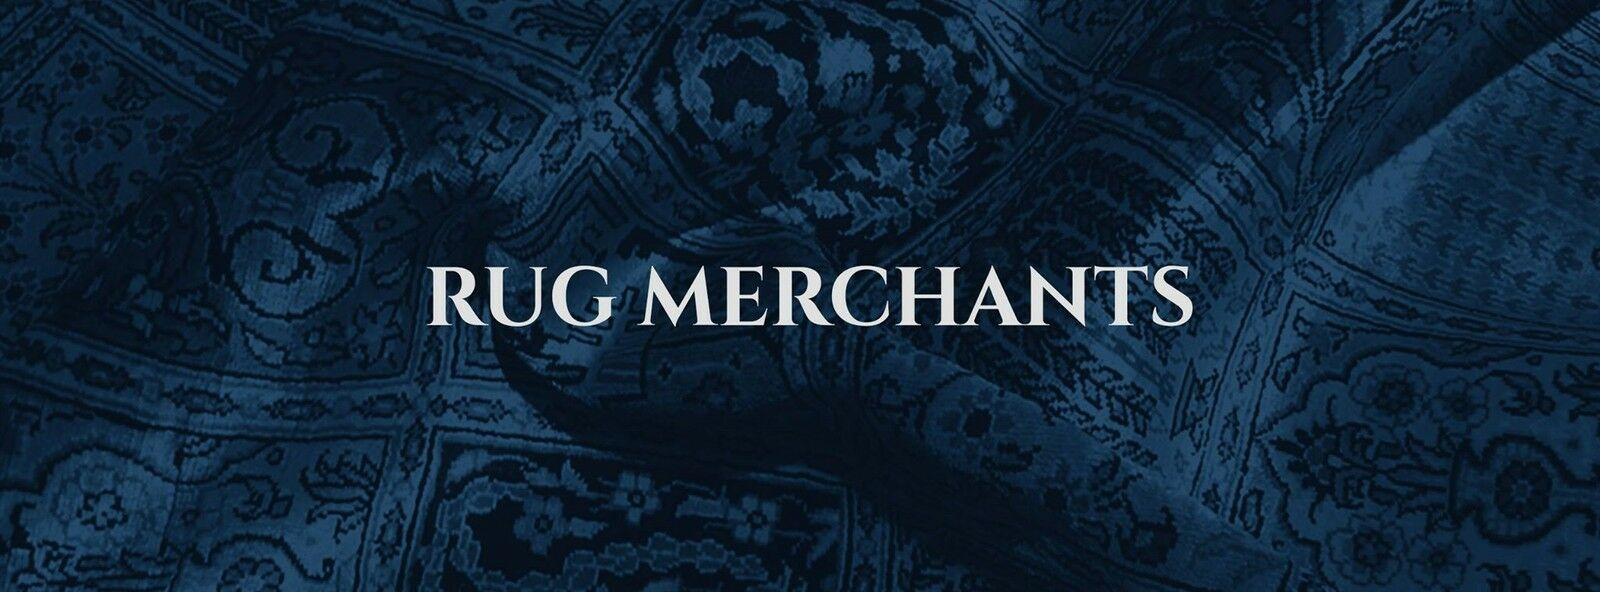 Rug Merchants